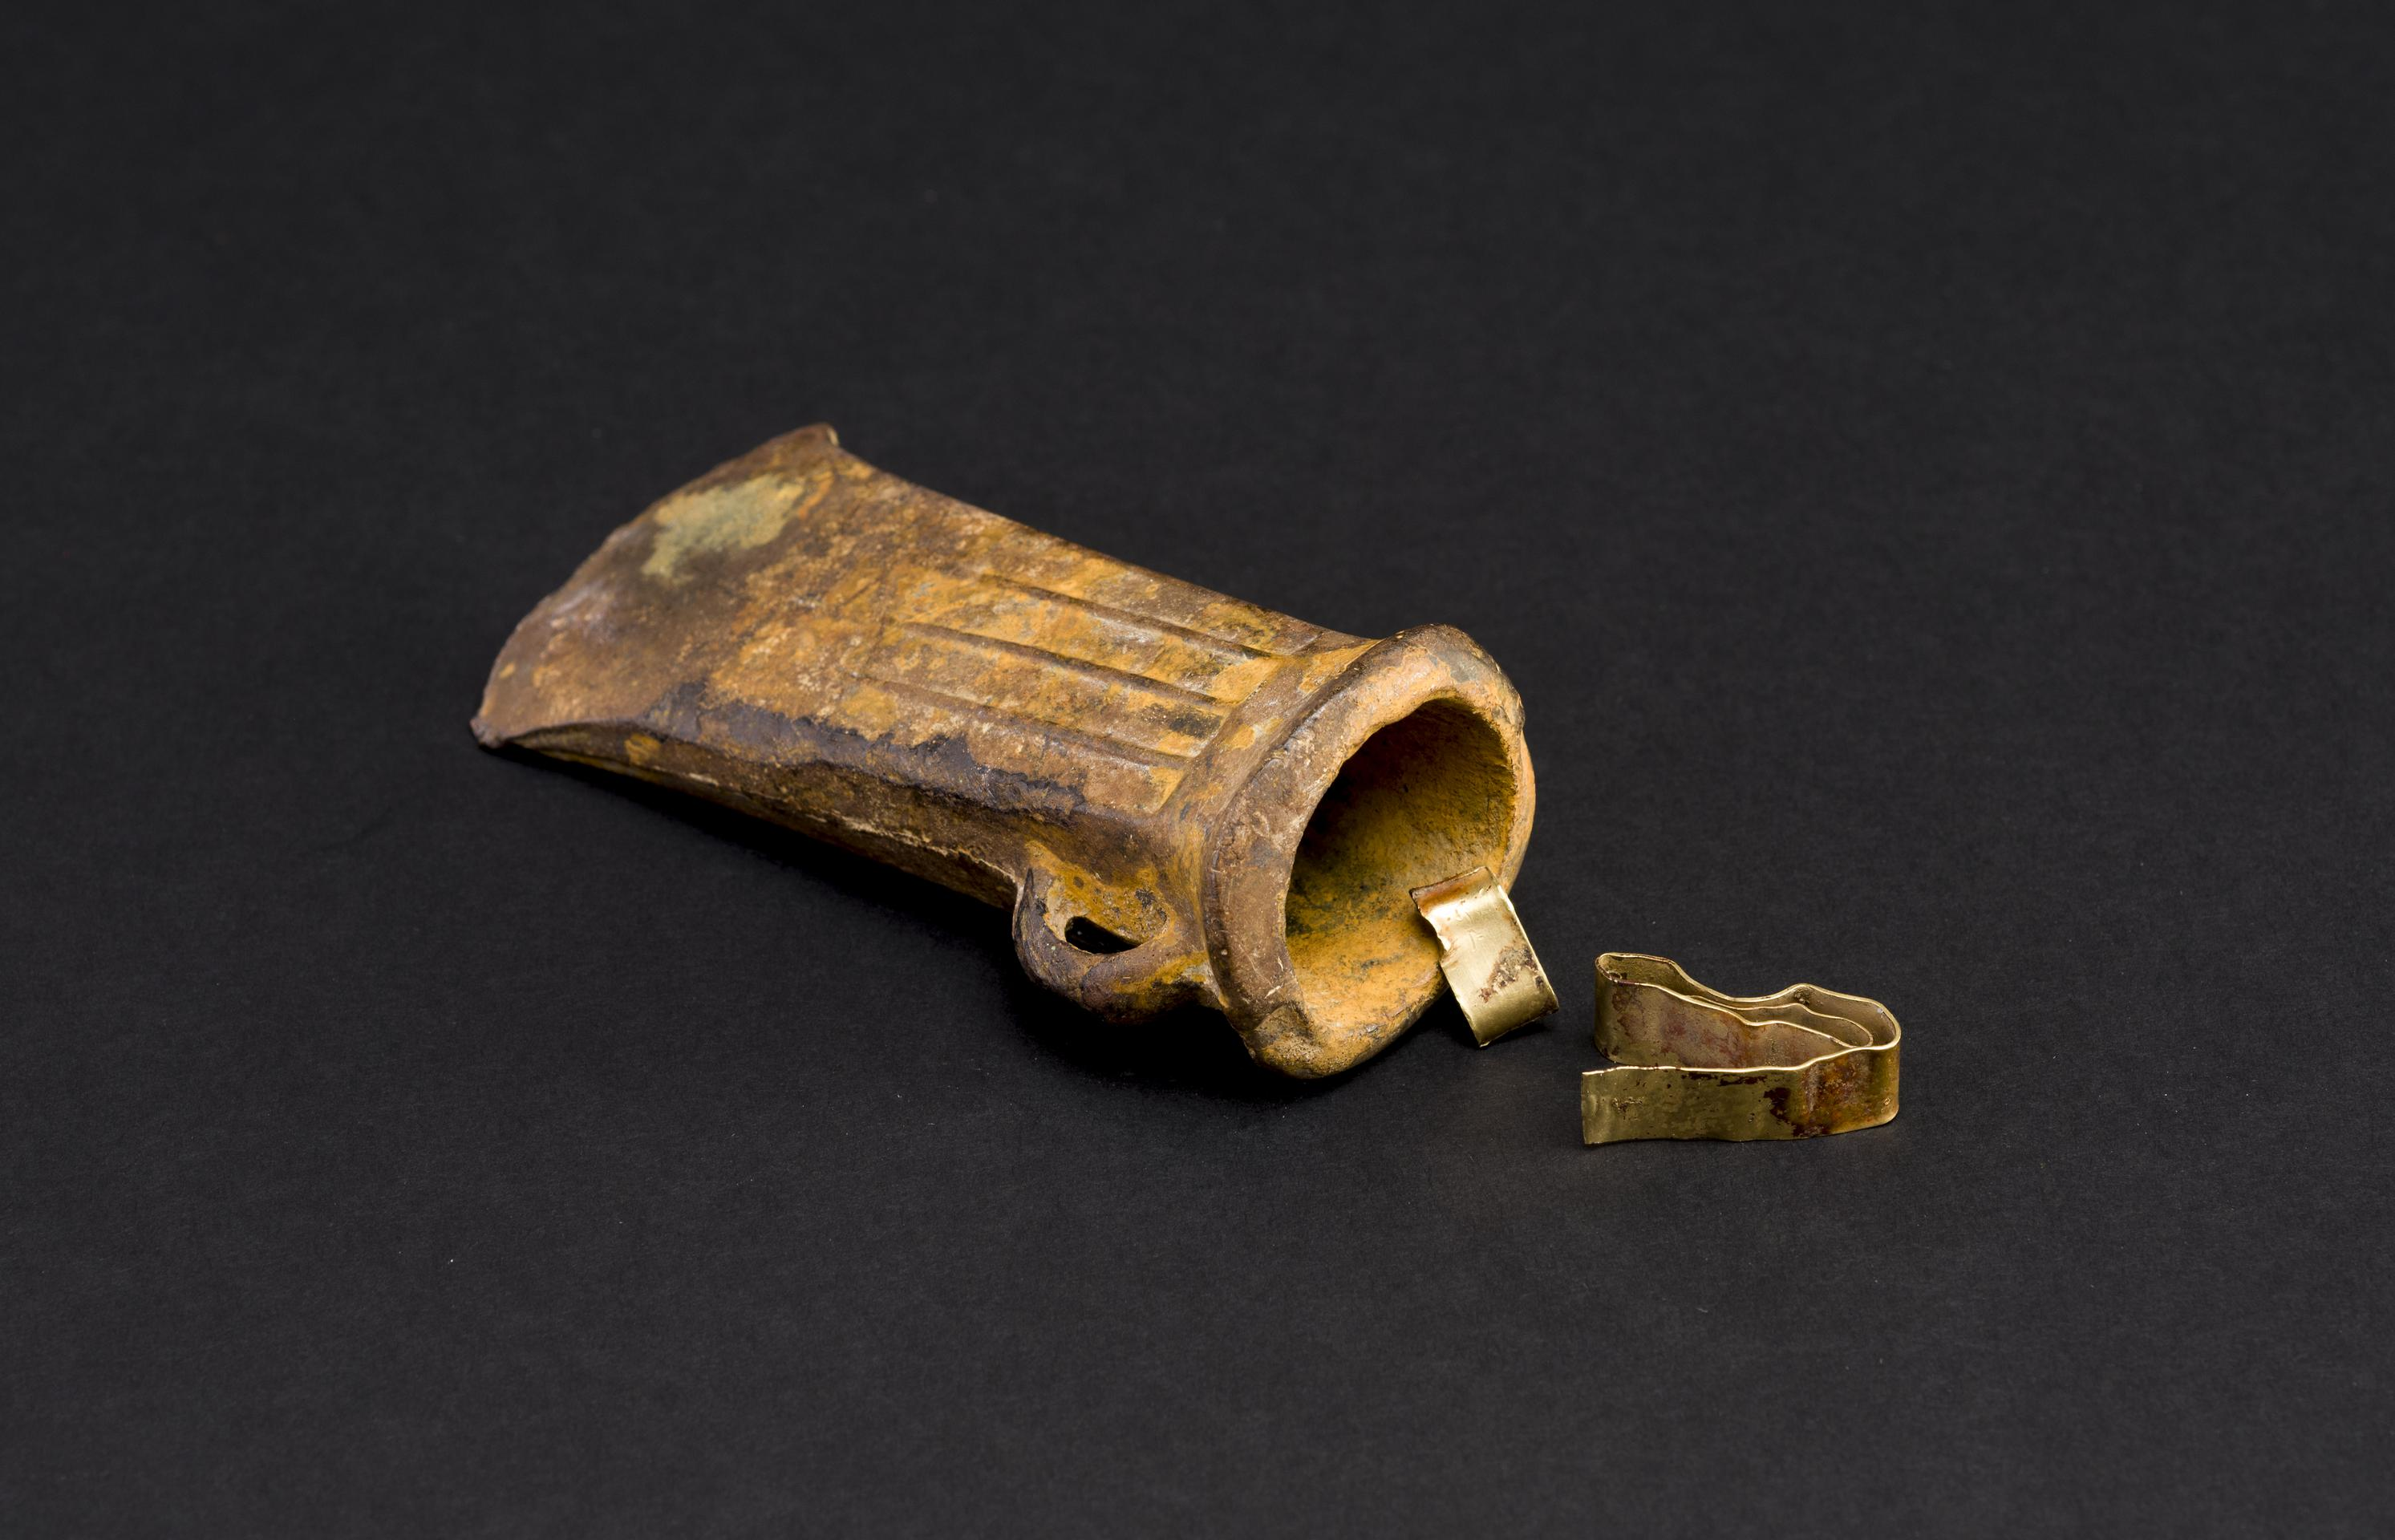 Open the image 'Late Bronze Age - ribbed bronze socketed axe, gold bracelet and ribbon fragment hoard group'